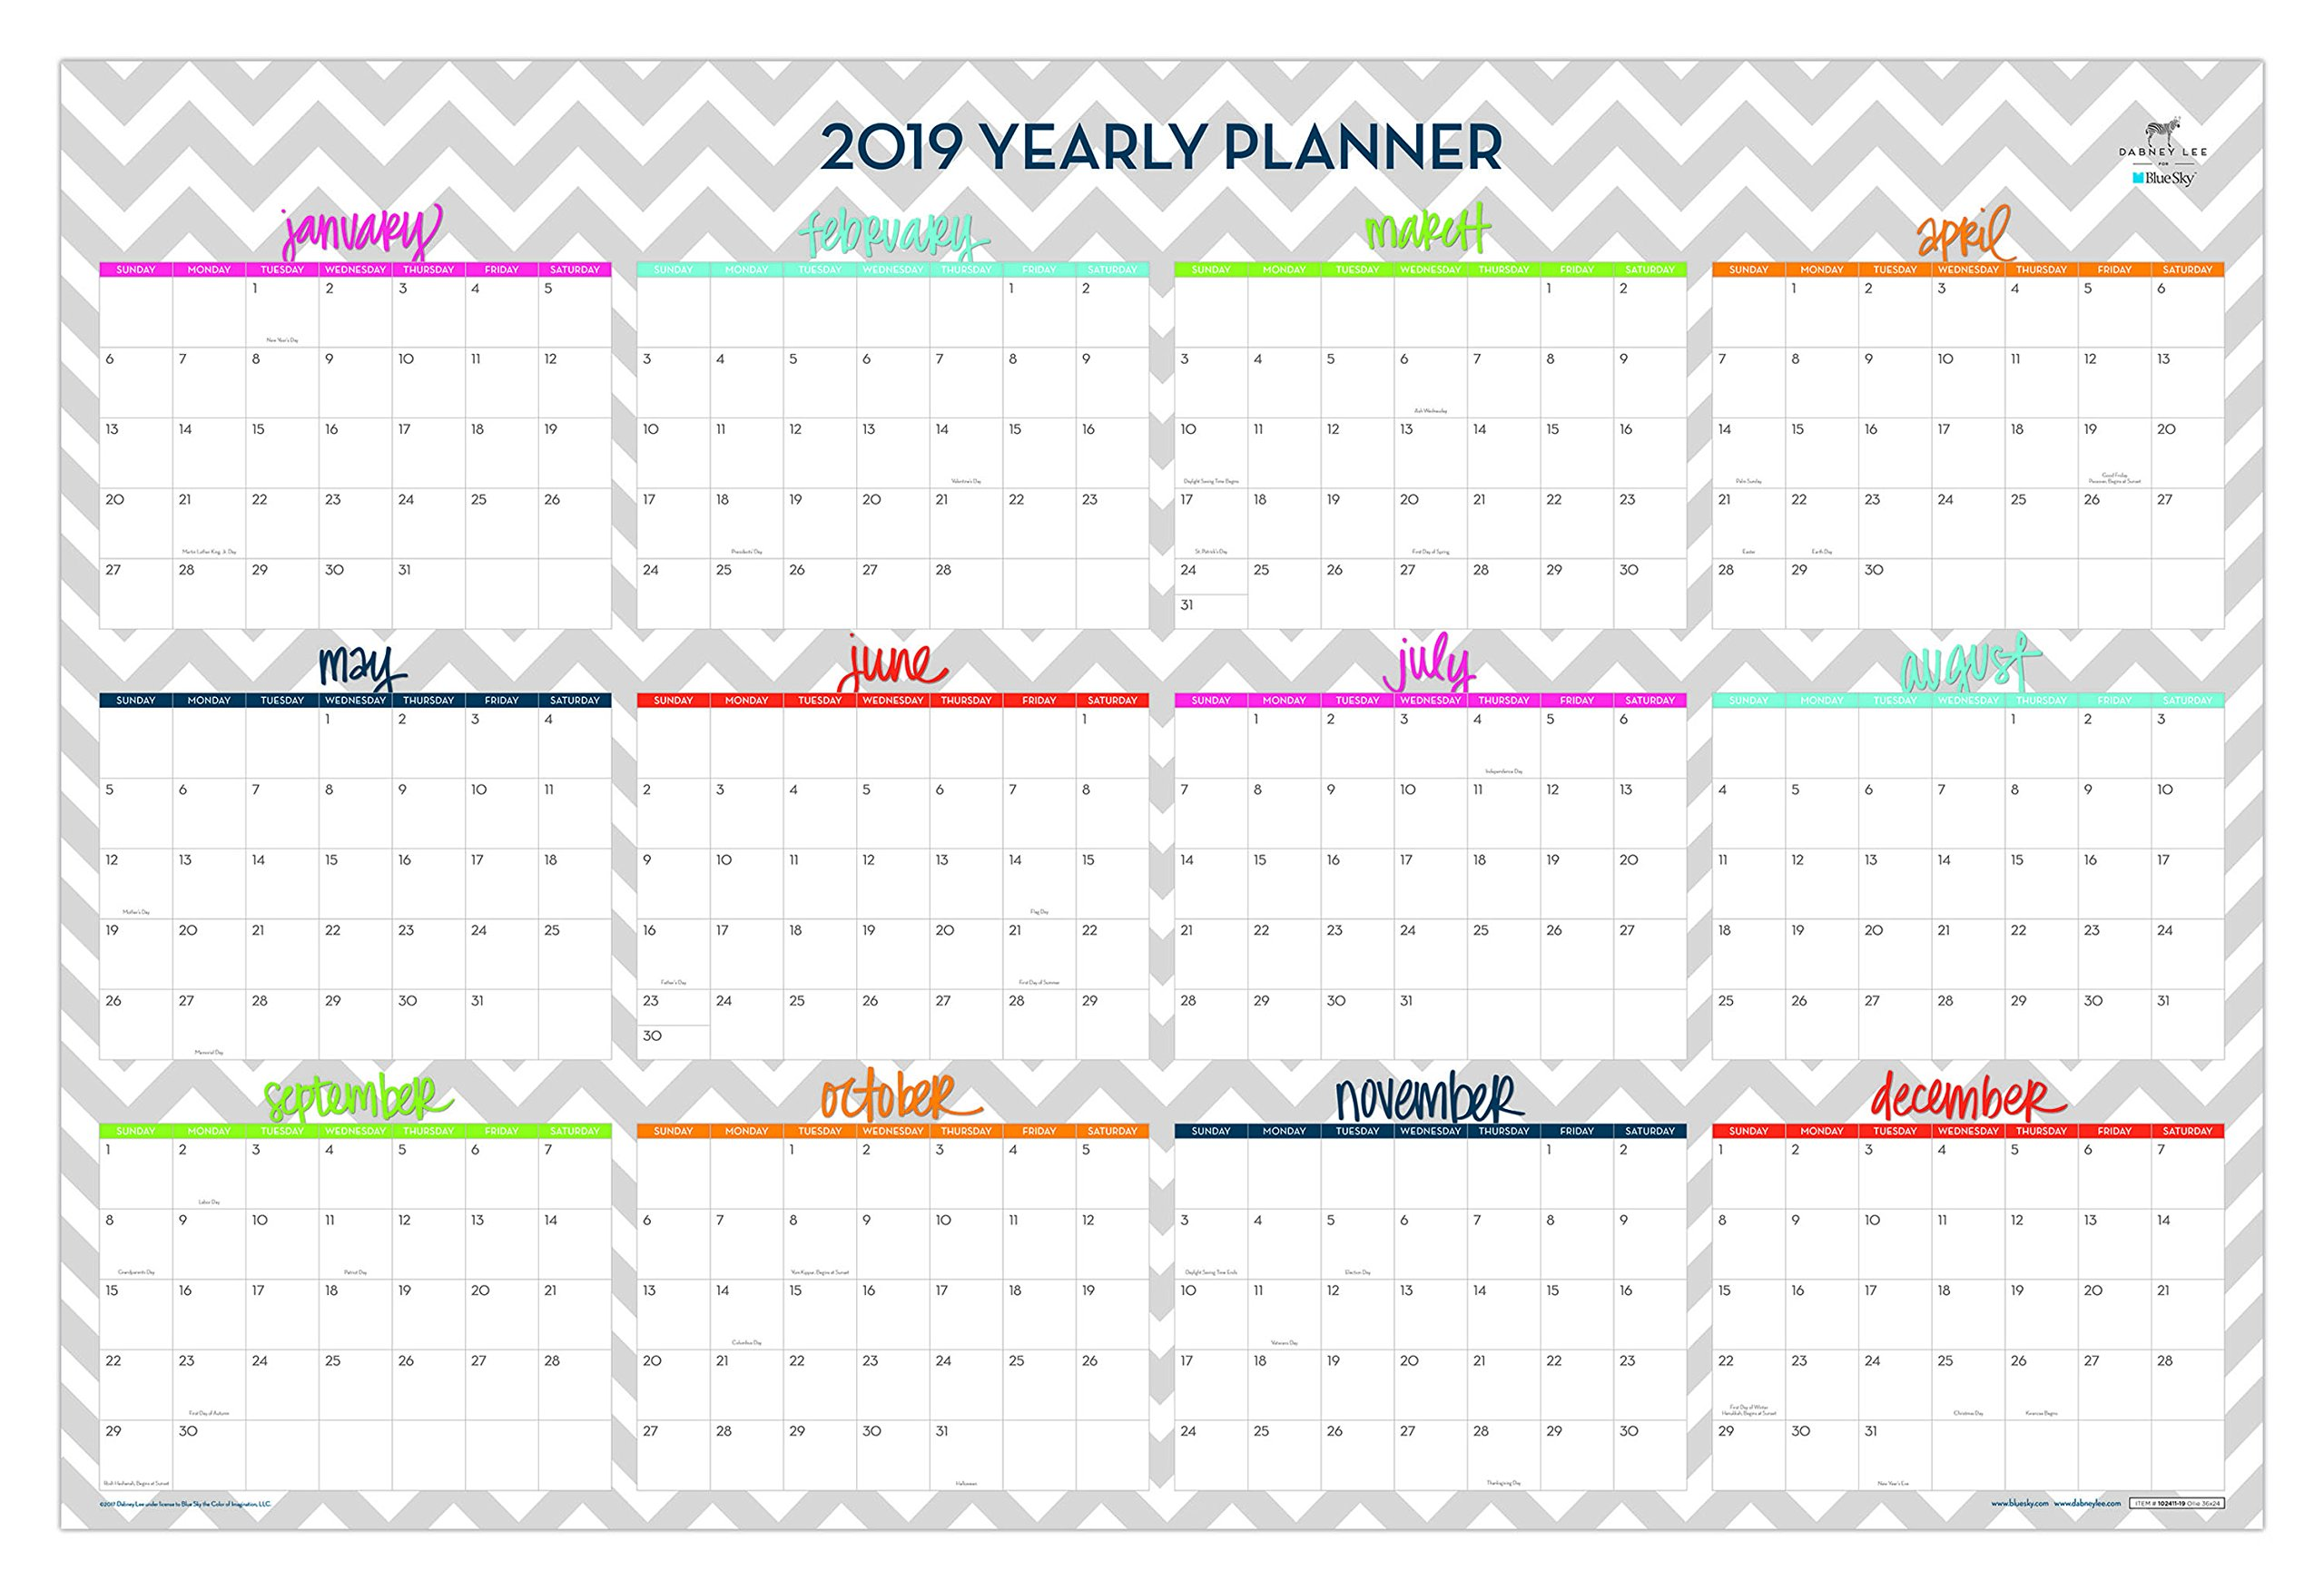 Dabney Lee for Blue Sky 2019 Laminated Erasable Wall Calendar, January 2019 - December 2019, Double Sided, 36'' x 24'', Ollie